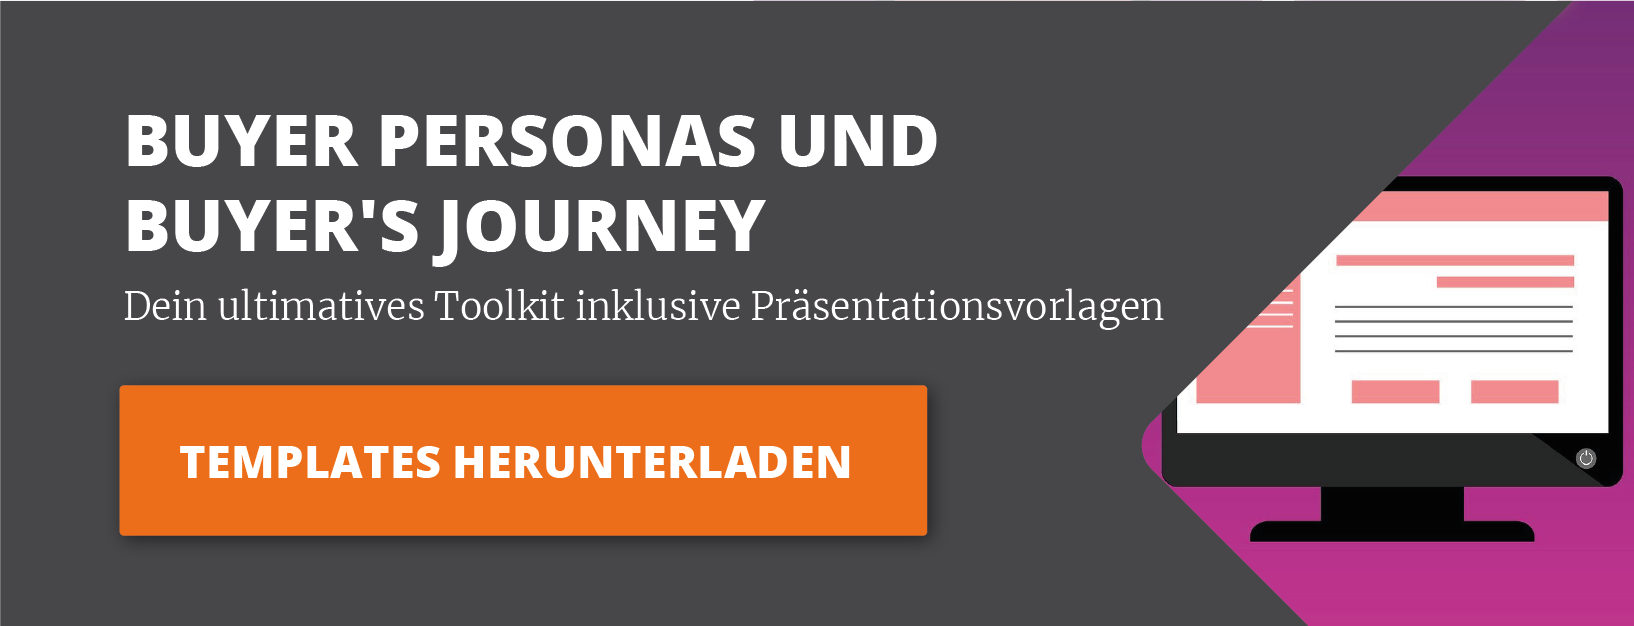 Buyers Journey Toolkit herunterladen